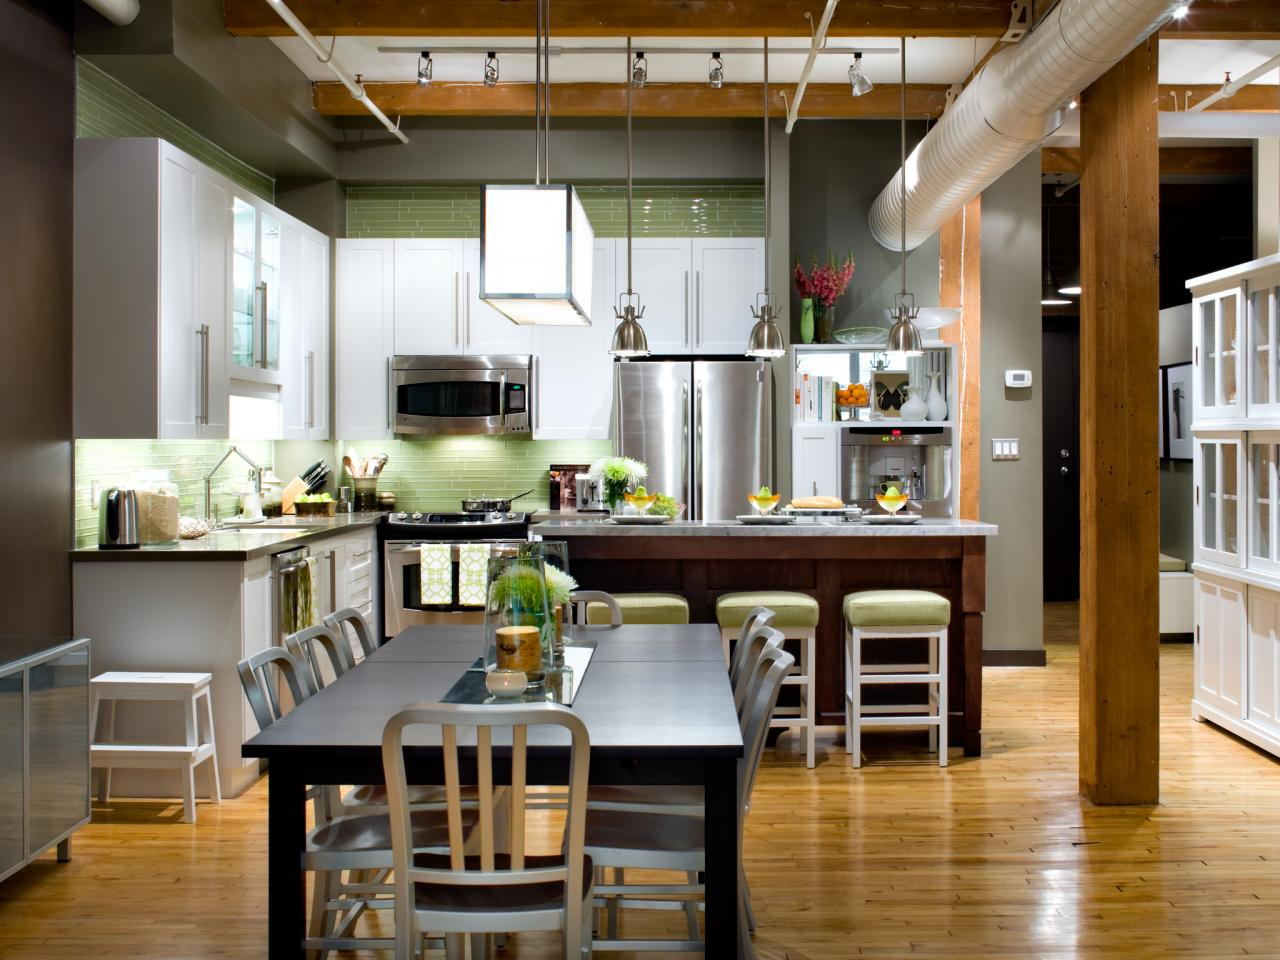 L shaped kitchen design pictures ideas tips from hgtv for Kitchen dining room ideas